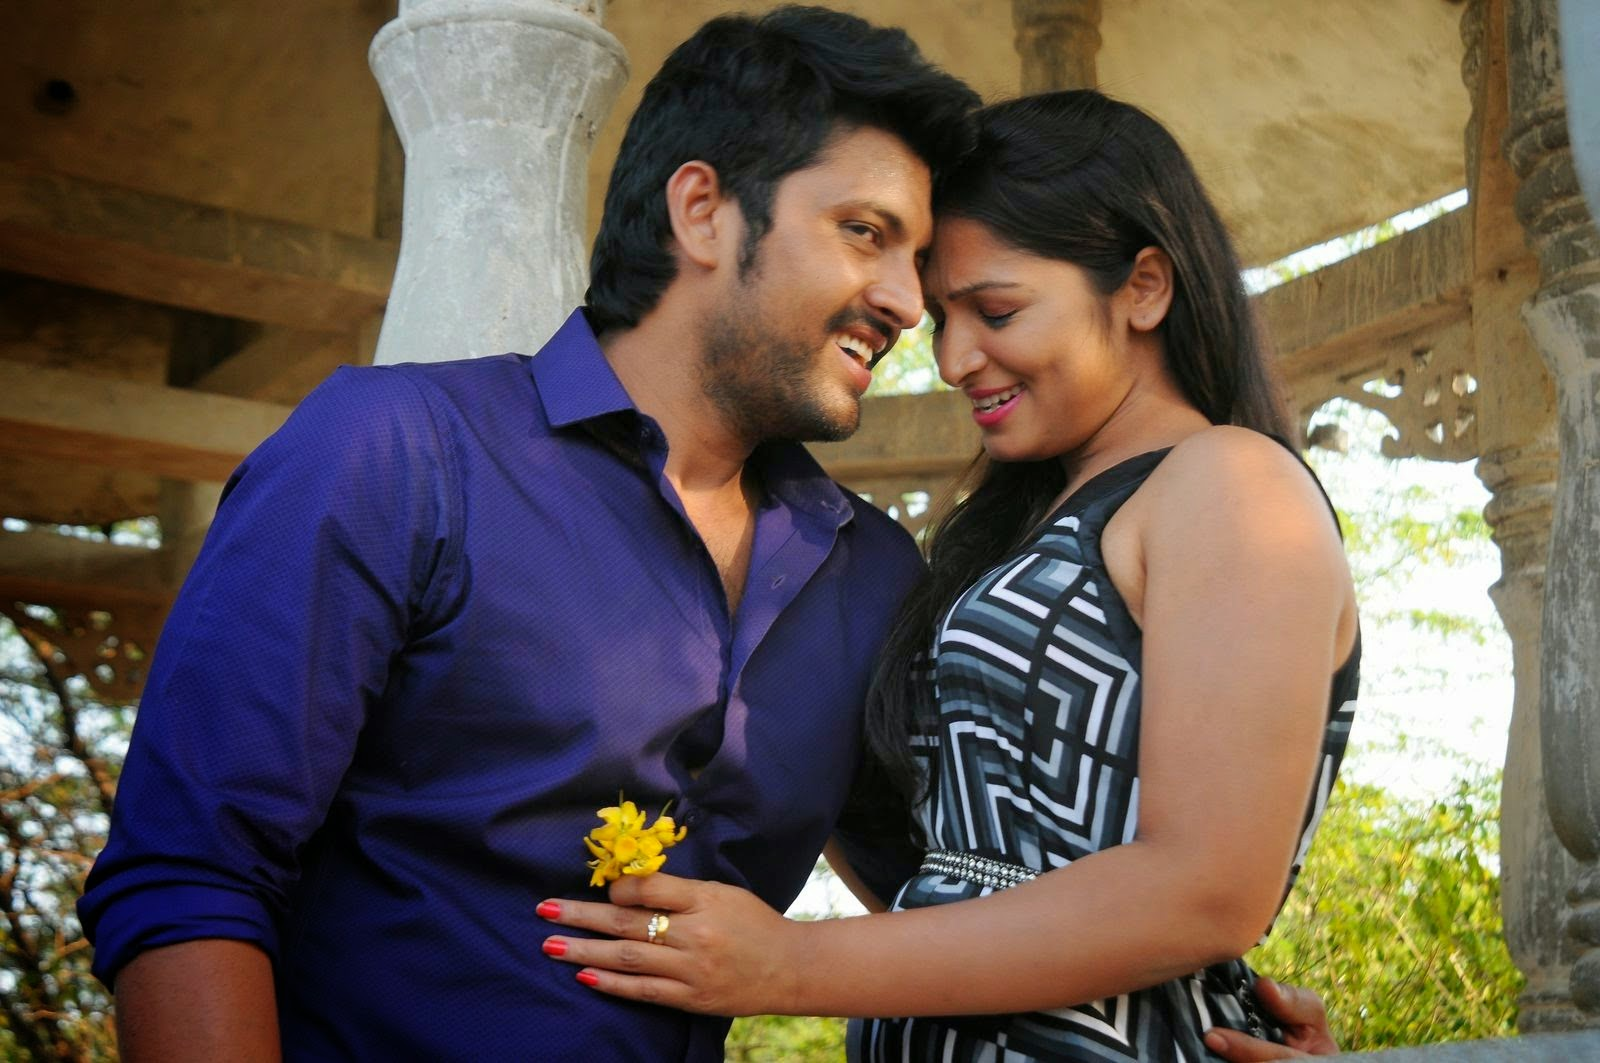 Swimming Pool Movie HD Photos Akhil Karthik Priya Vashishta Brahmini